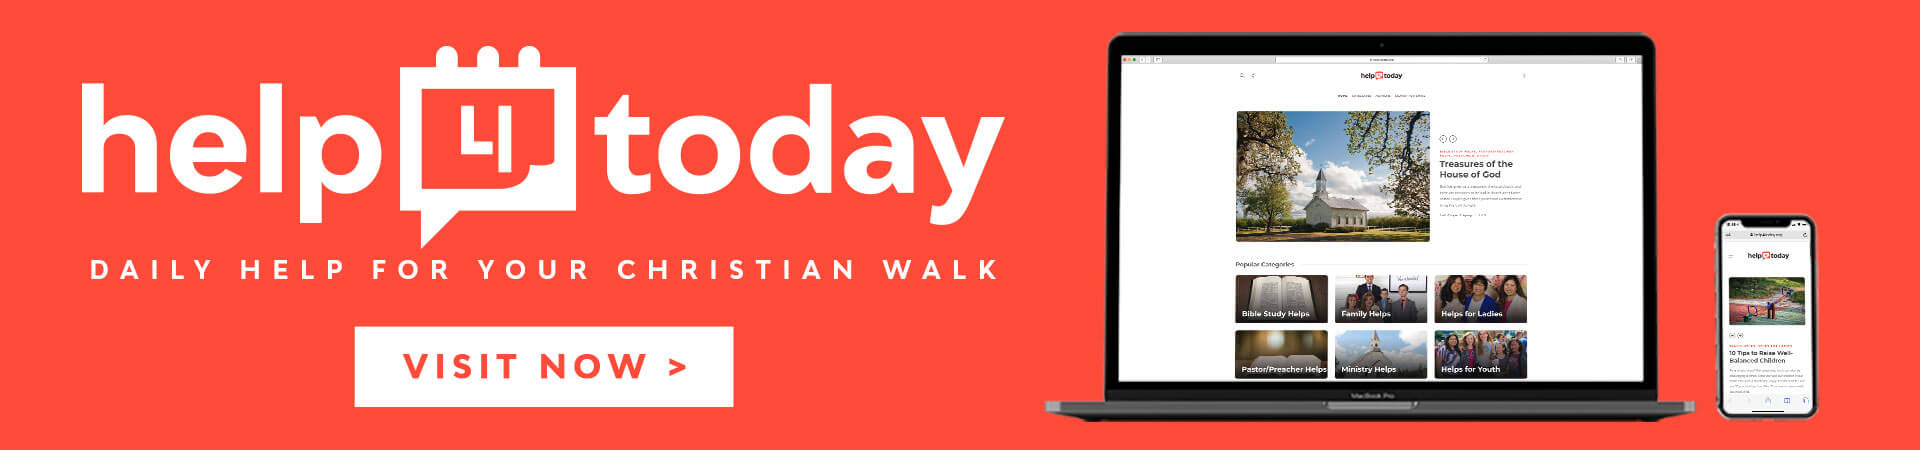 Daily Help for Your Christian Walk